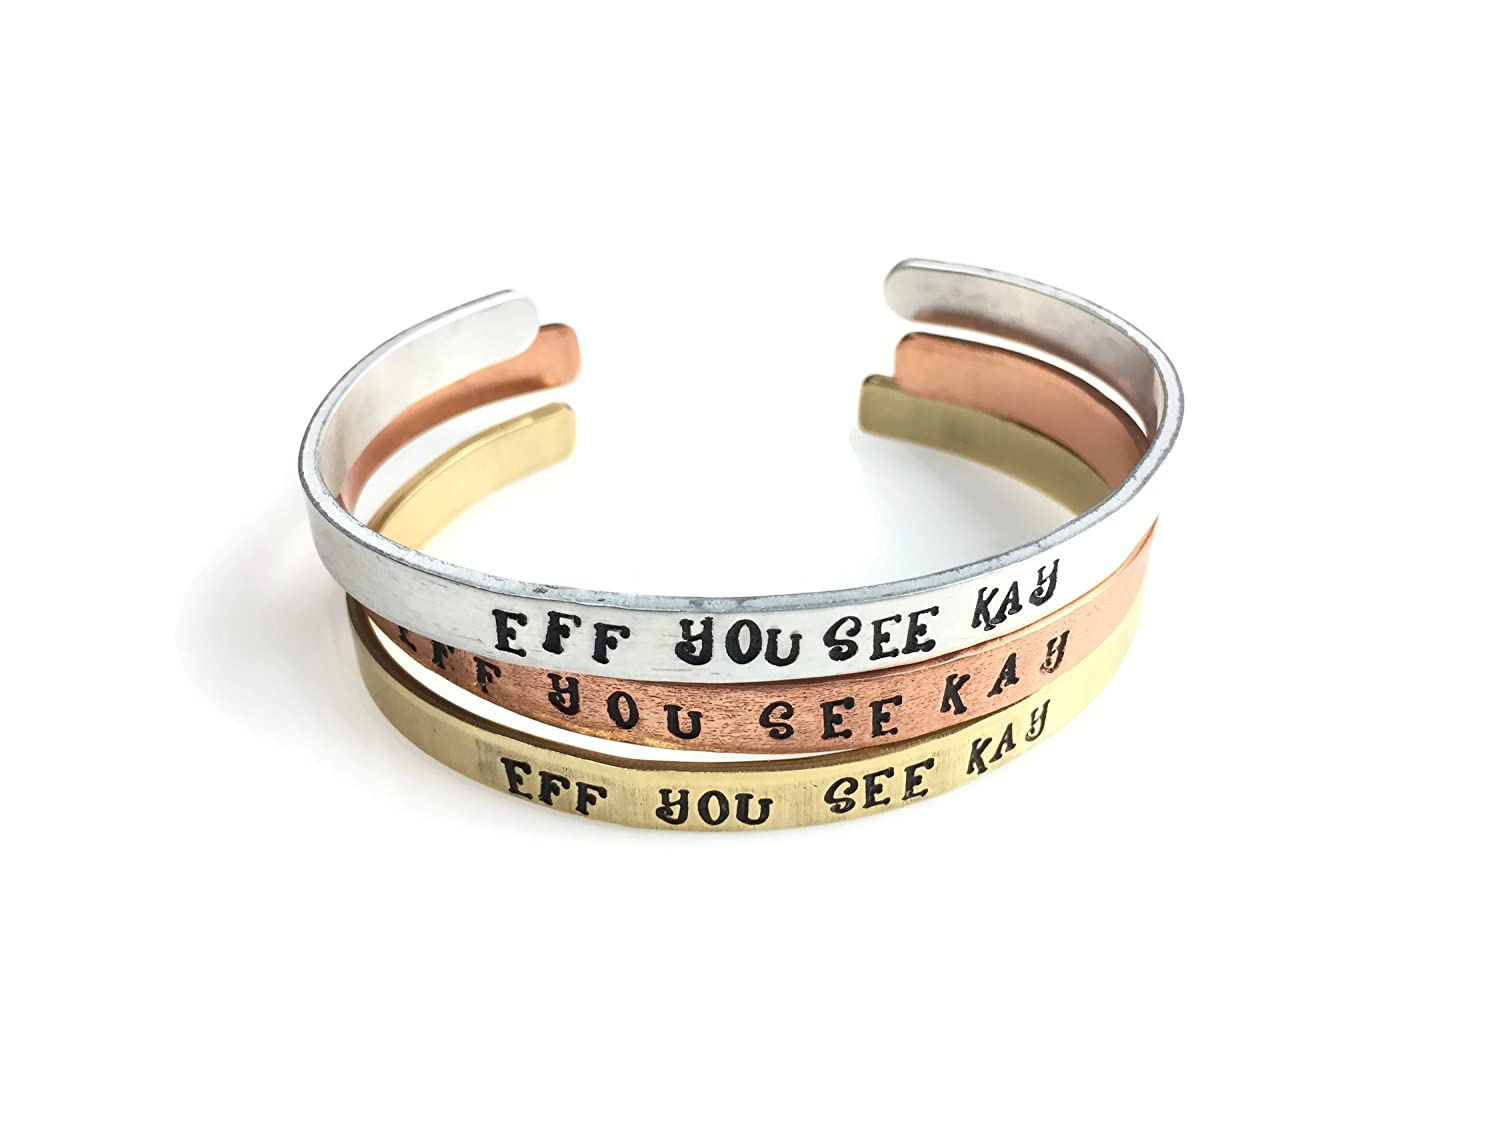 Eff You See Kay Cuff Bracelet (4 Metal Choices)